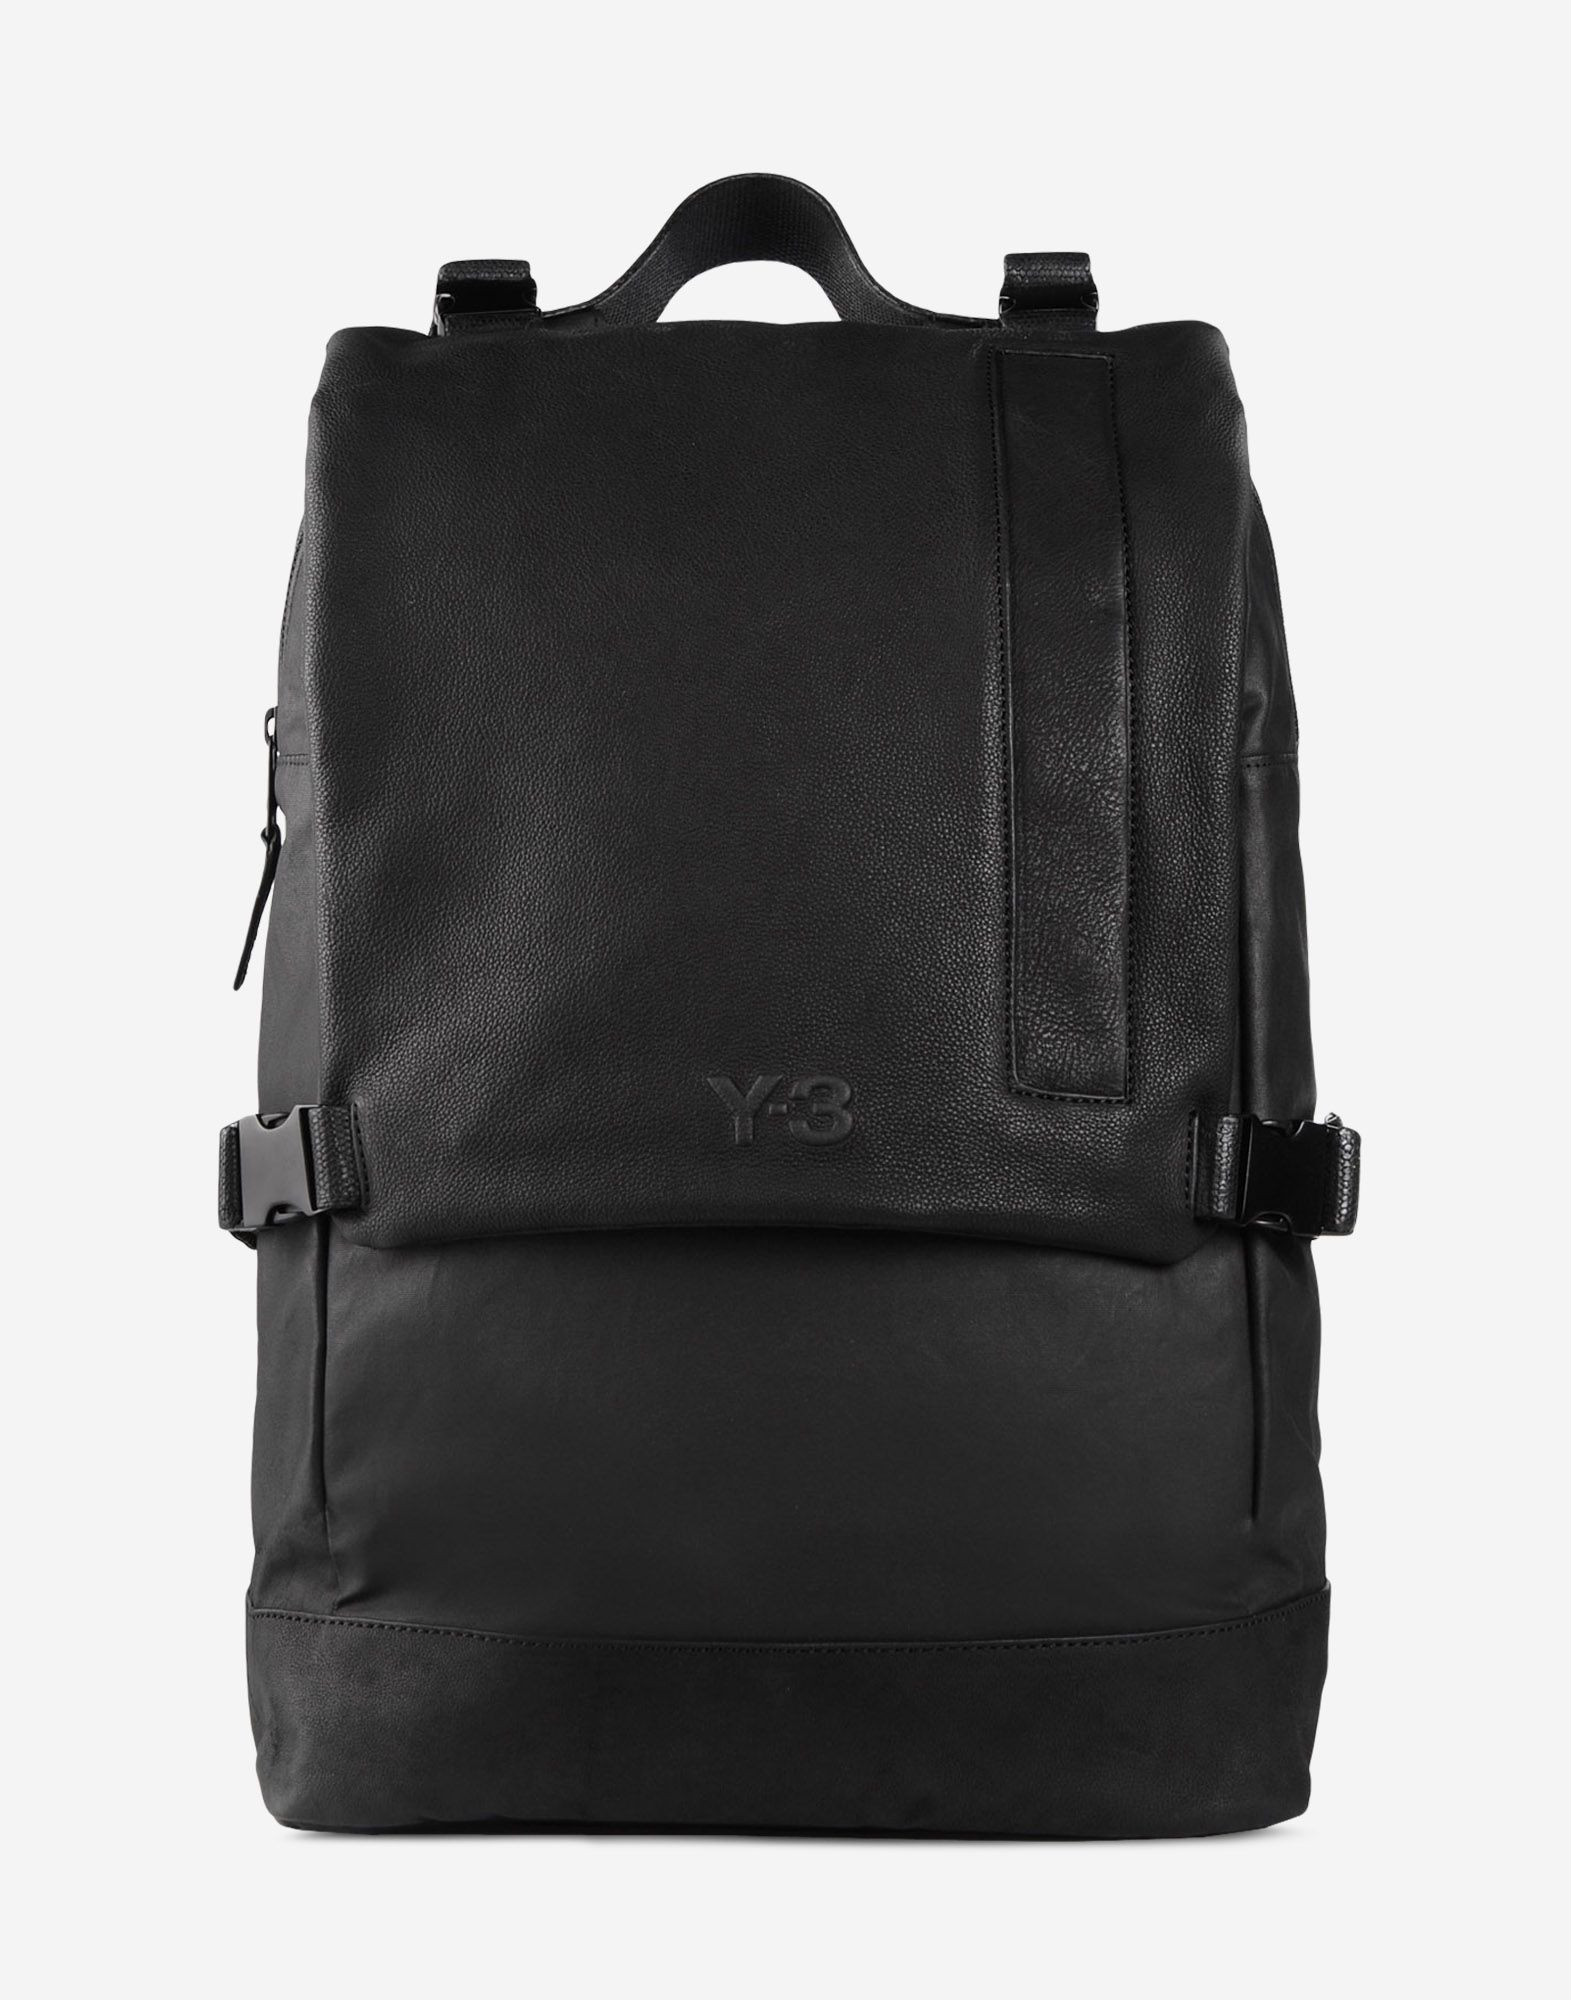 y 3 y 3 toile backpack backpack e f new products 1694a 8ba56 ... c30fbff16442f